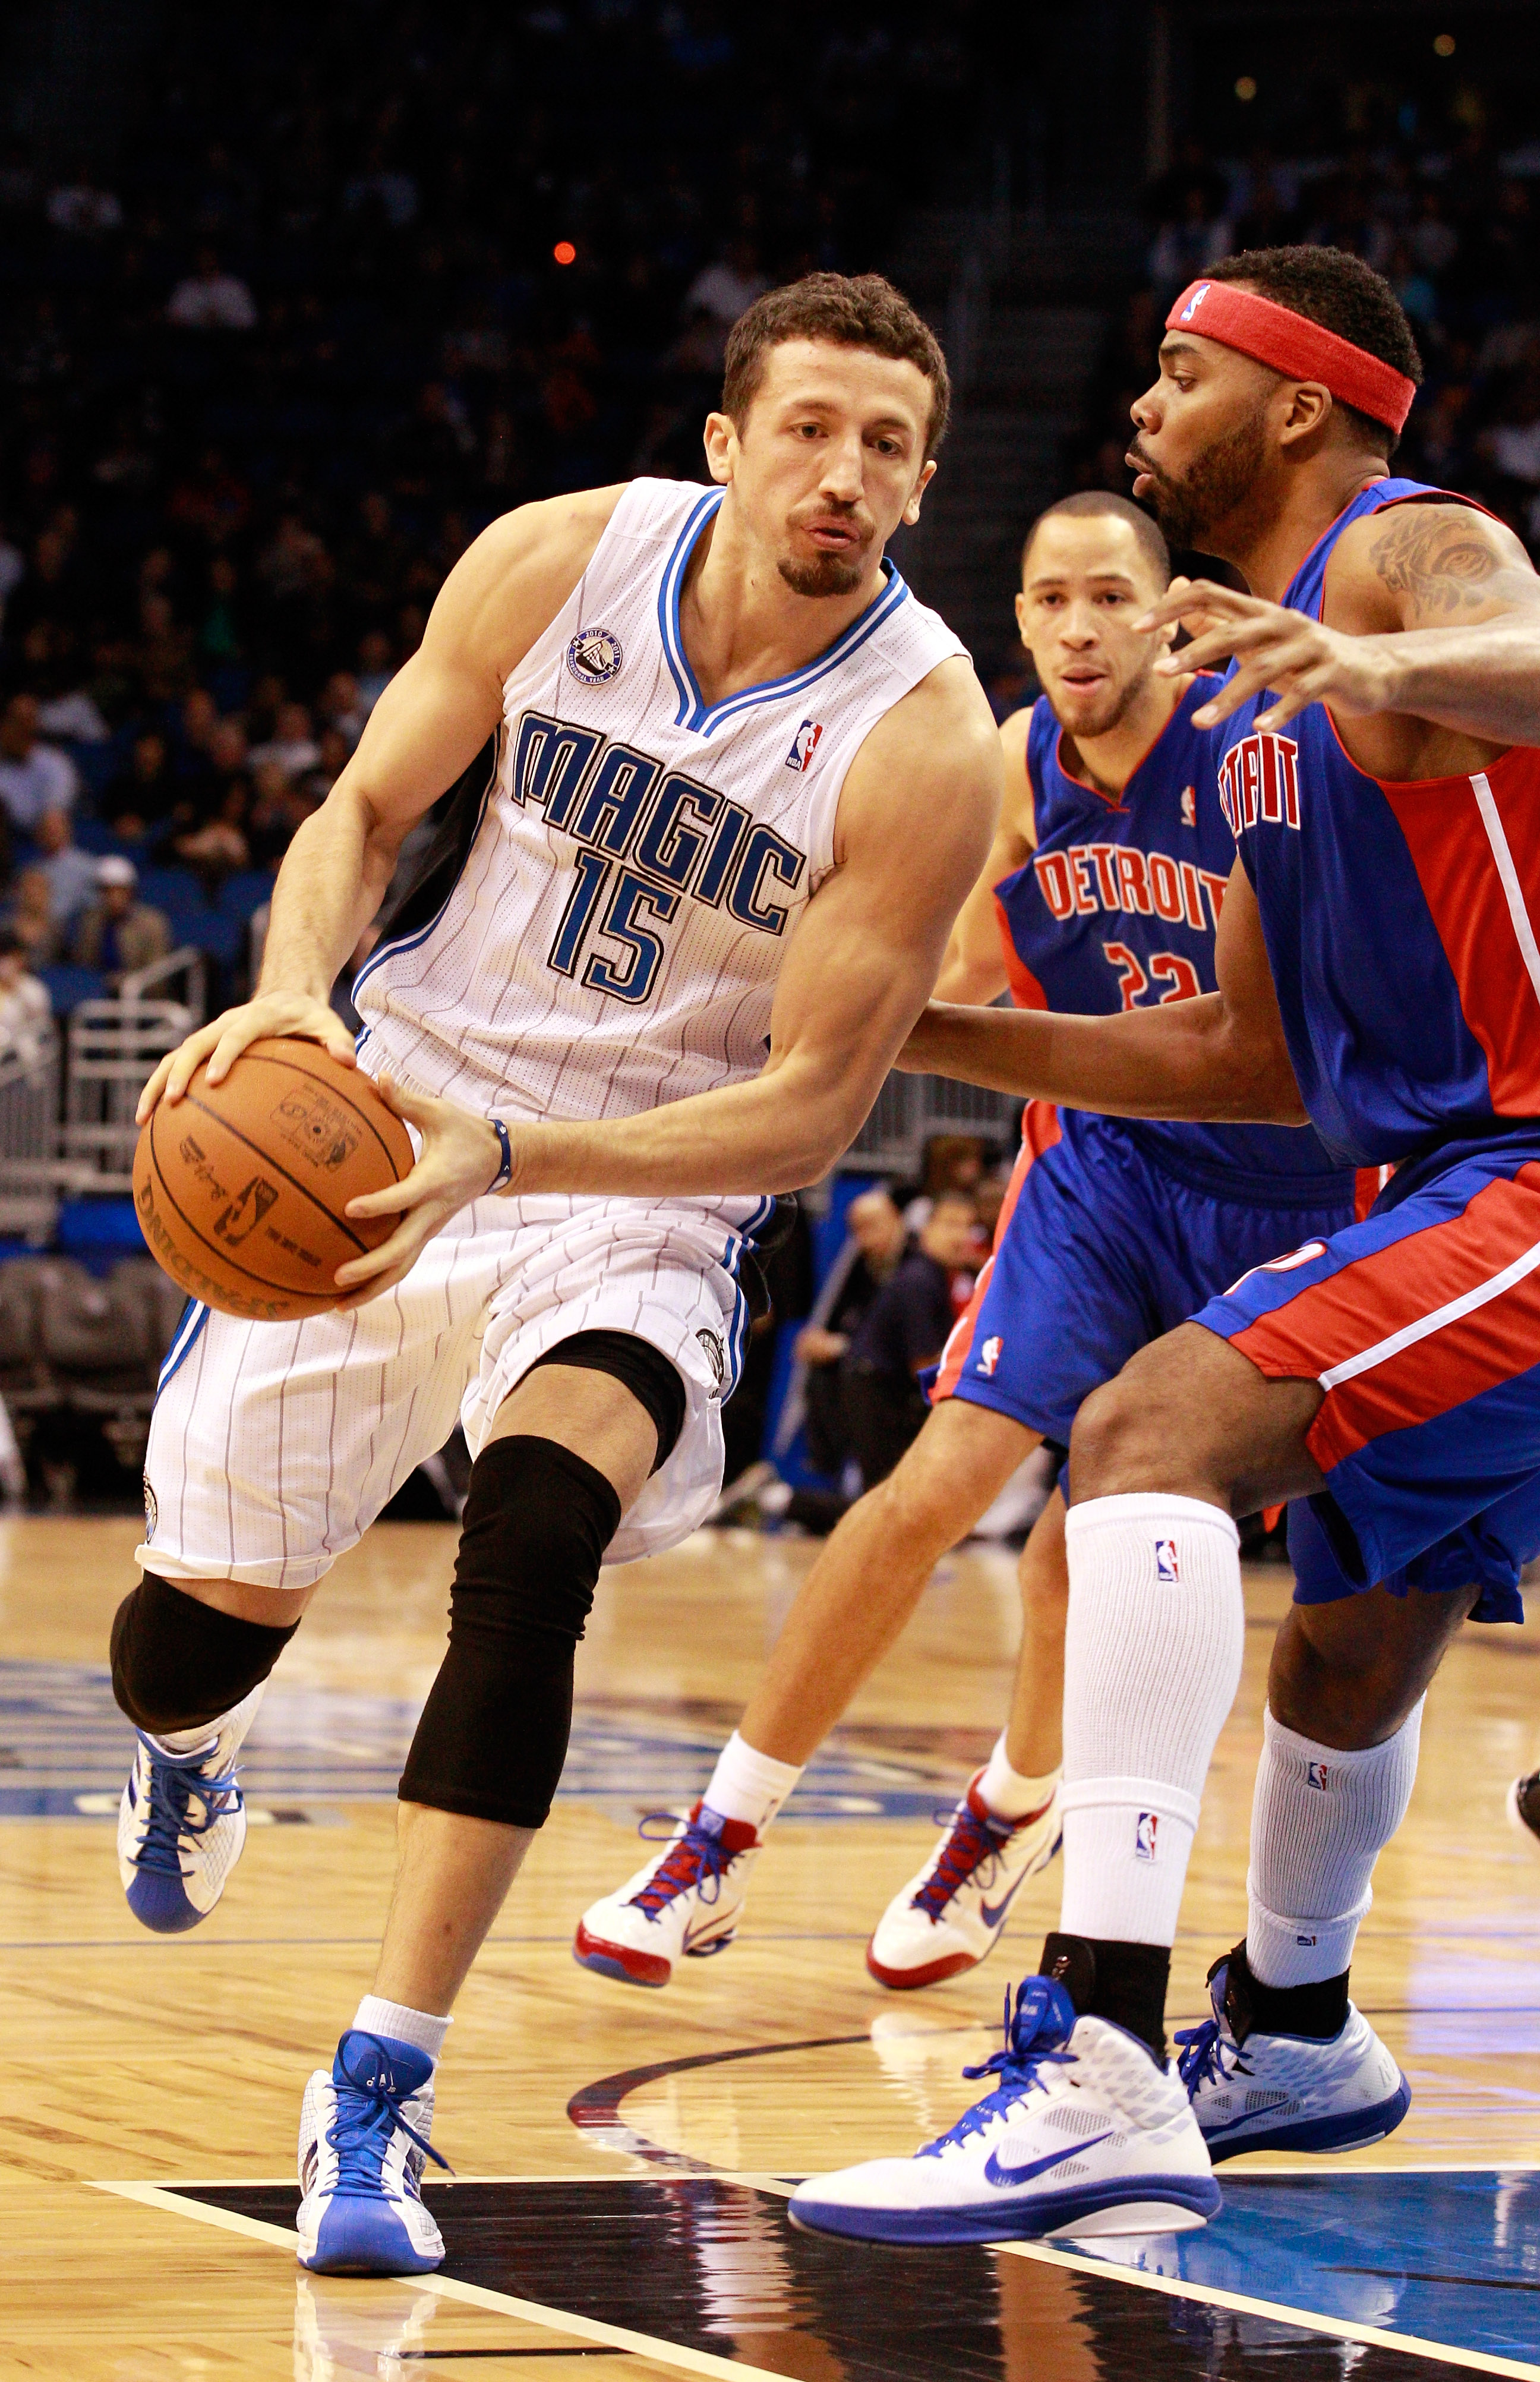 ORLANDO, FL - JANUARY 24:  Hedo Turkoglu #15 of the Orlando Magic drives against Ben Wallace #6 of the Detroit Pistons during the game at Amway Arena on January 24, 2011 in Orlando, Florida.  NOTE TO USER: User expressly acknowledges and agrees that, by d